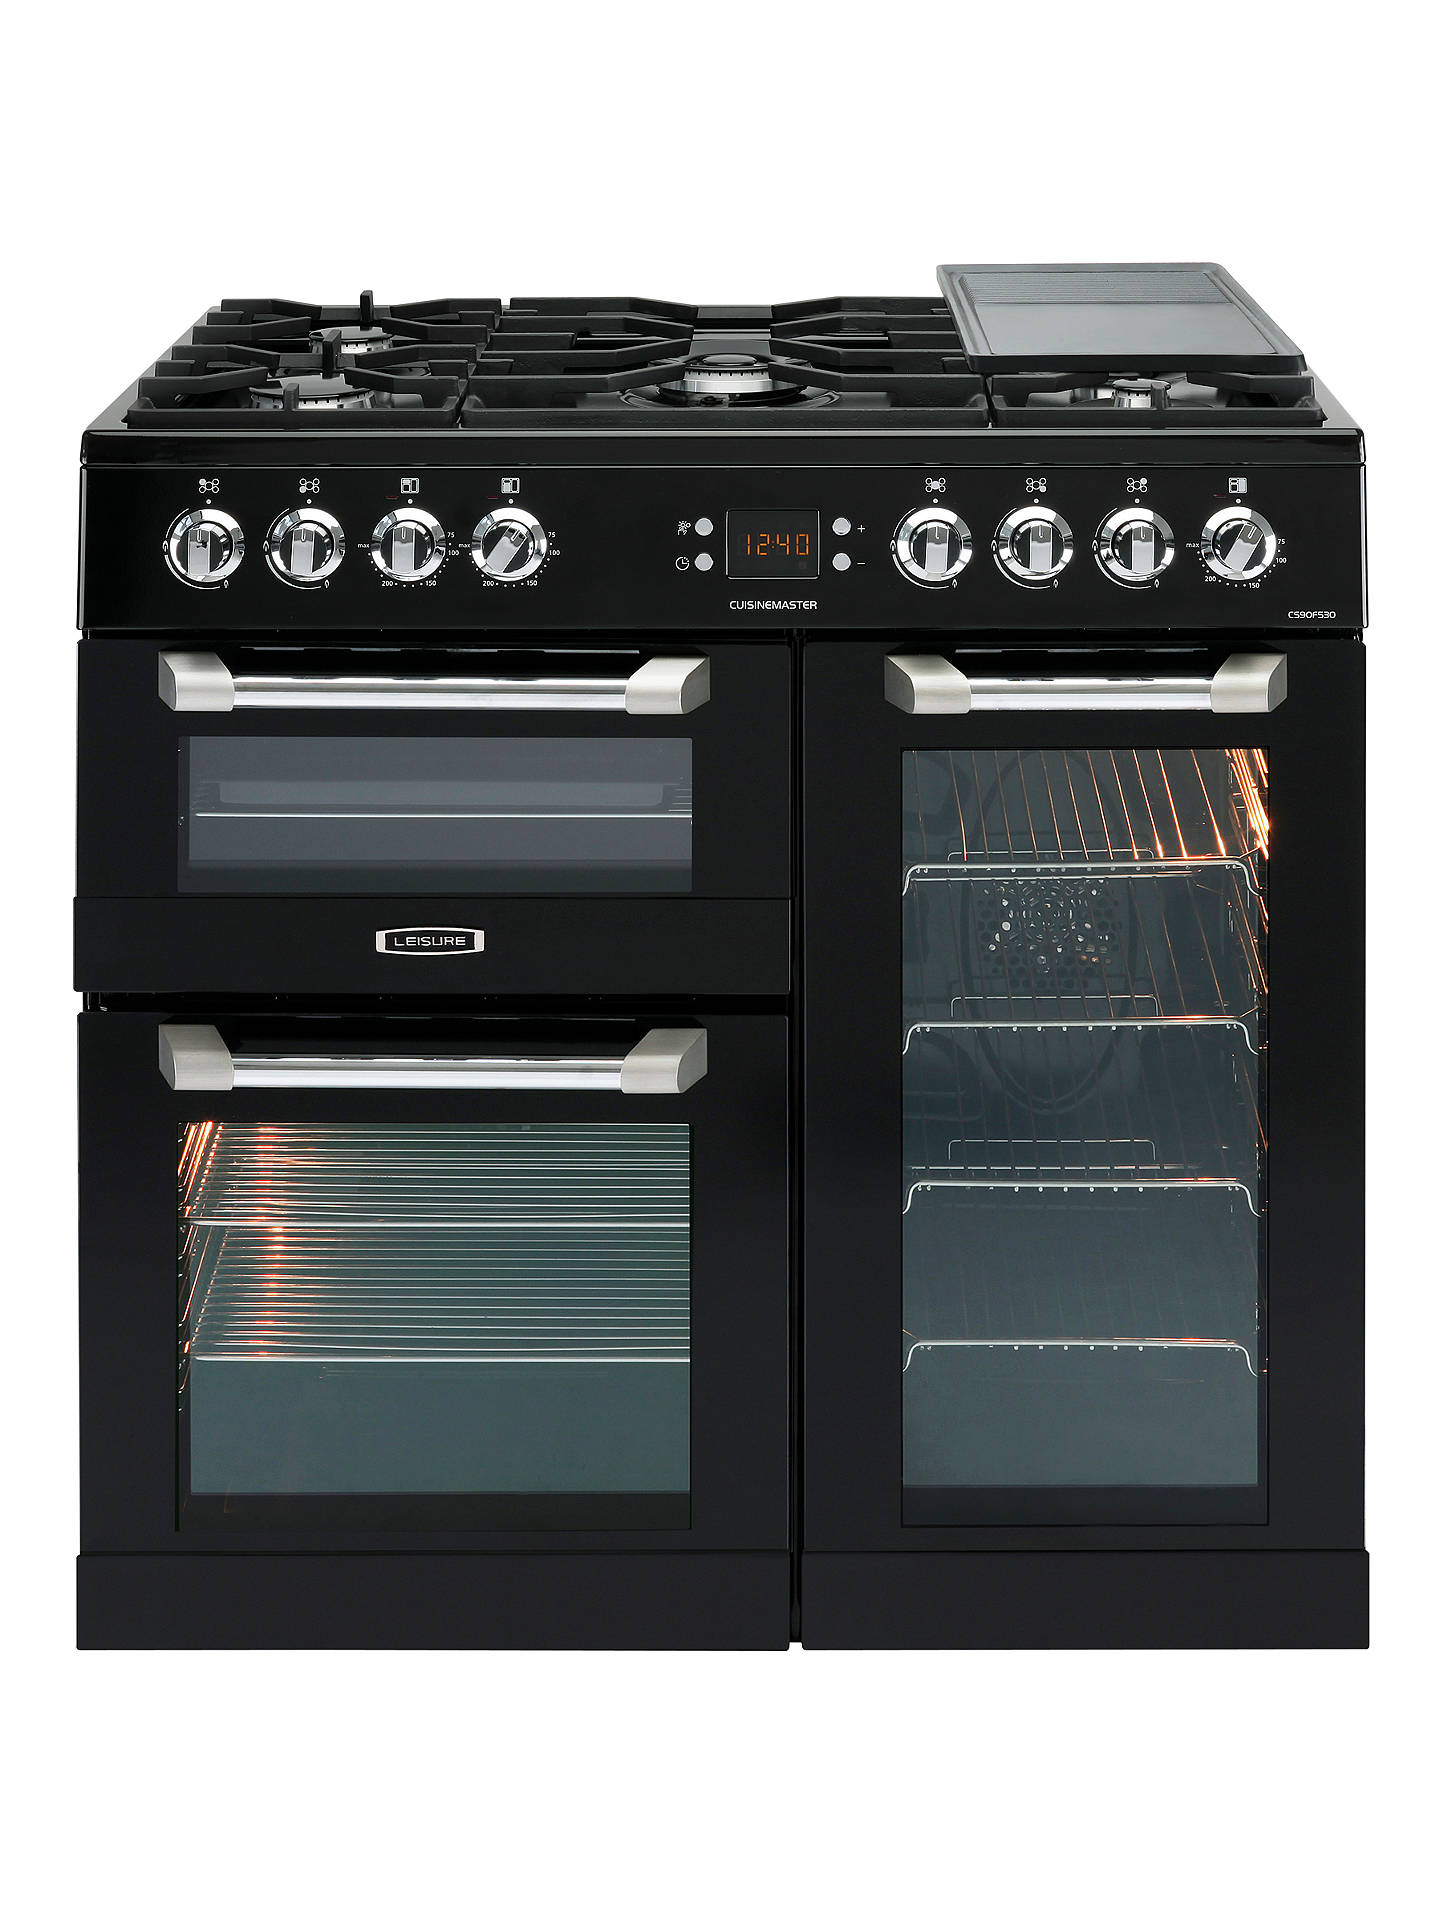 Buy Leisure CS90F530K Cuisinemaster Dual Fuel Range Cooker, Black Online at johnlewis.com